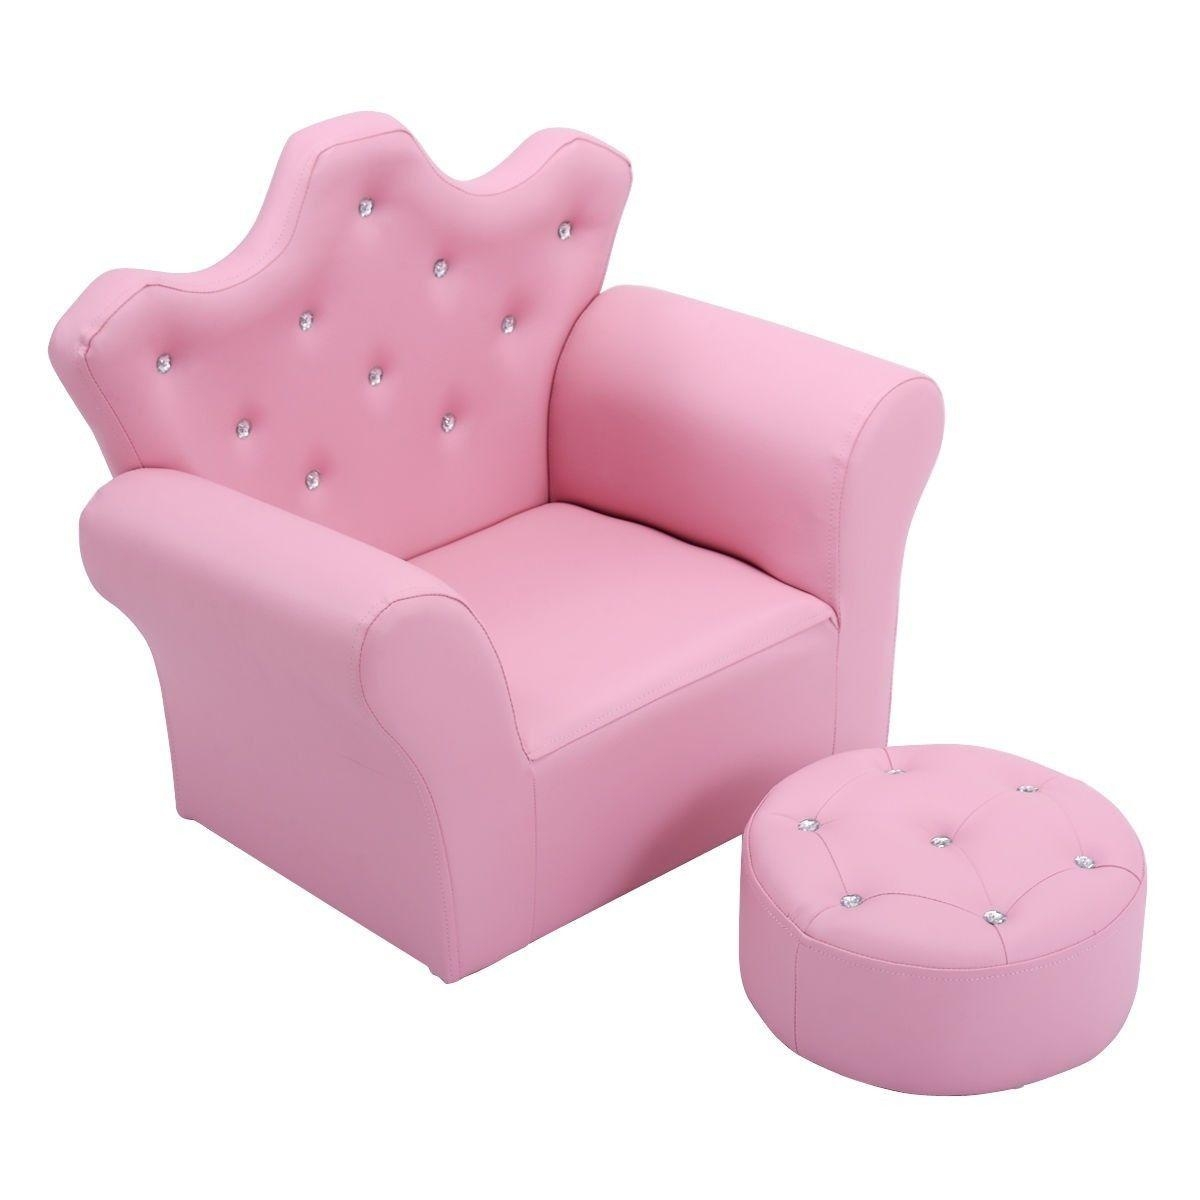 Princess Pink Chair With Ottoman Couch Kids Living Room Toddler For Kids Sofa Chair And Ottoman Set Zebra (View 19 of 20)